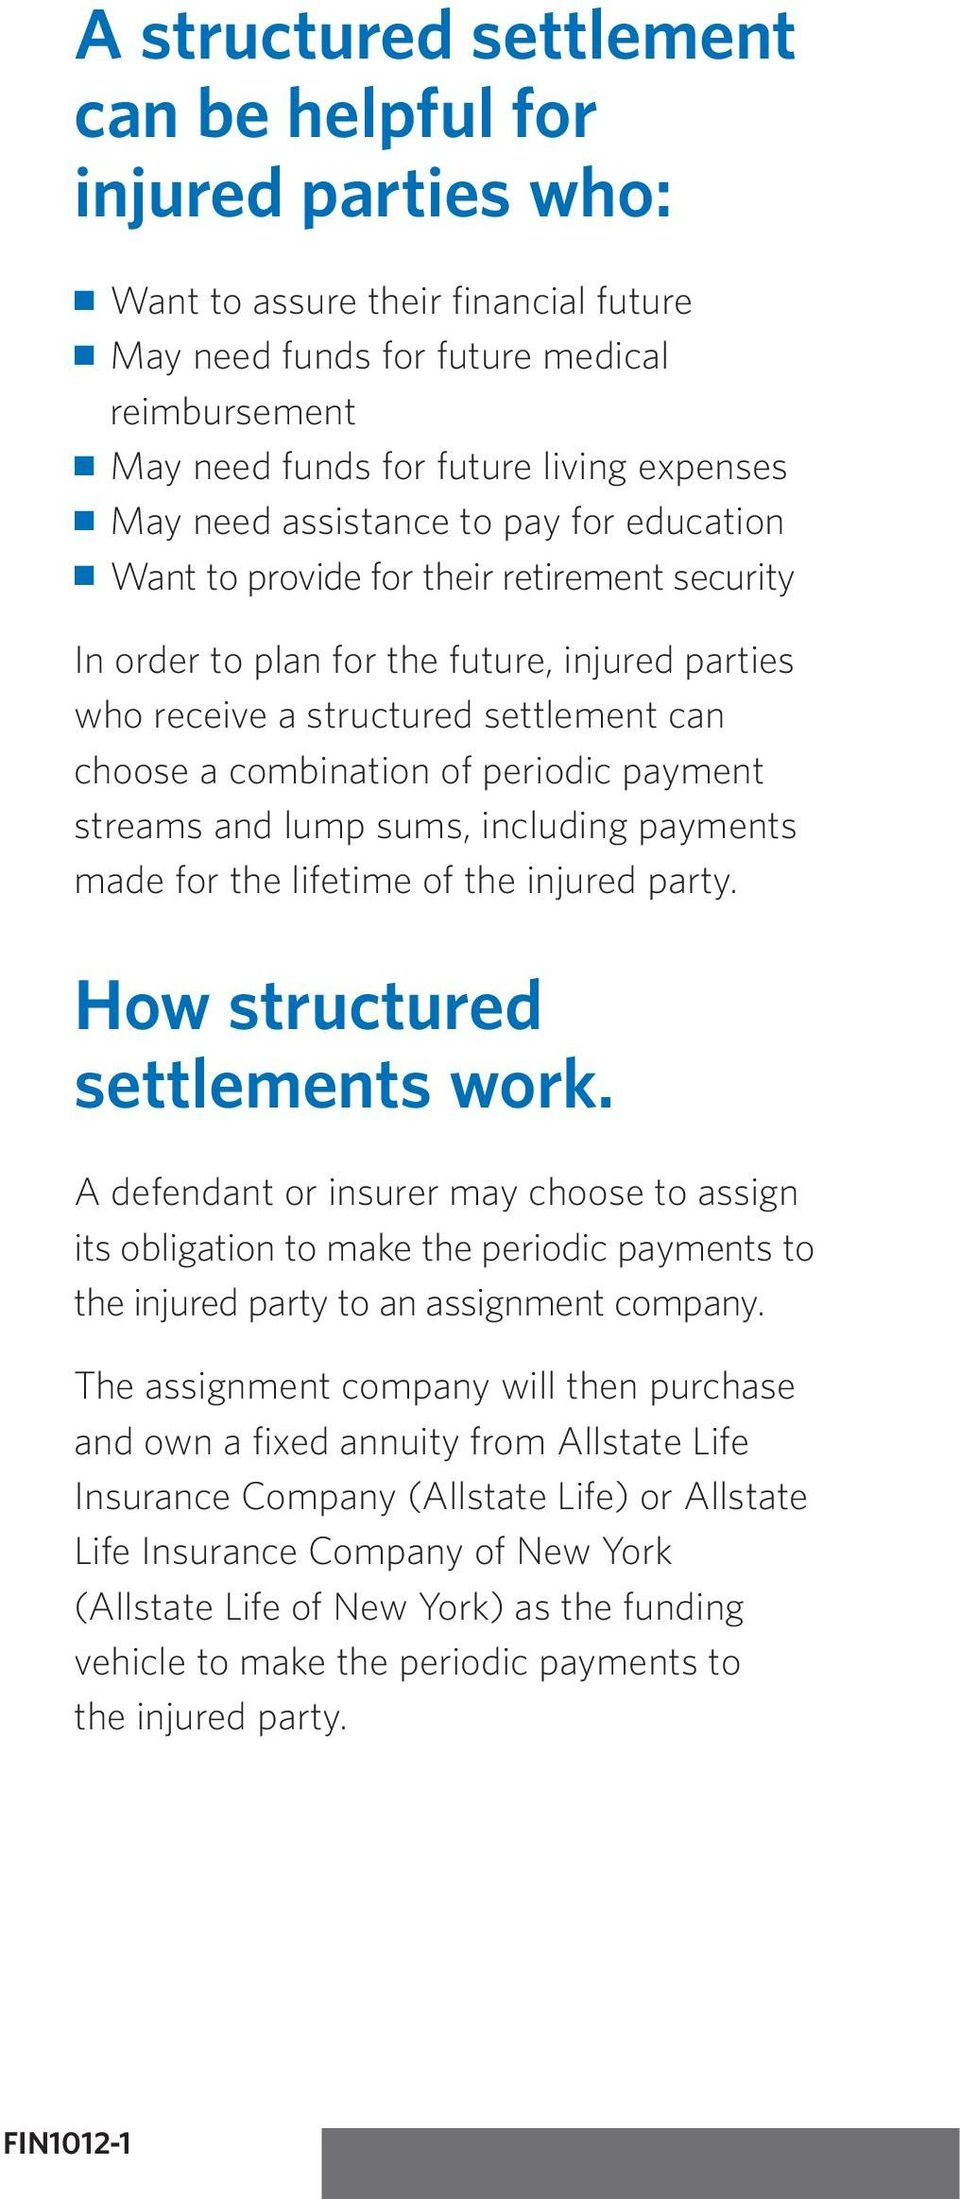 periodic payment streams and lump sums, including payments made for the lifetime of the injured party. How structured settlements work.